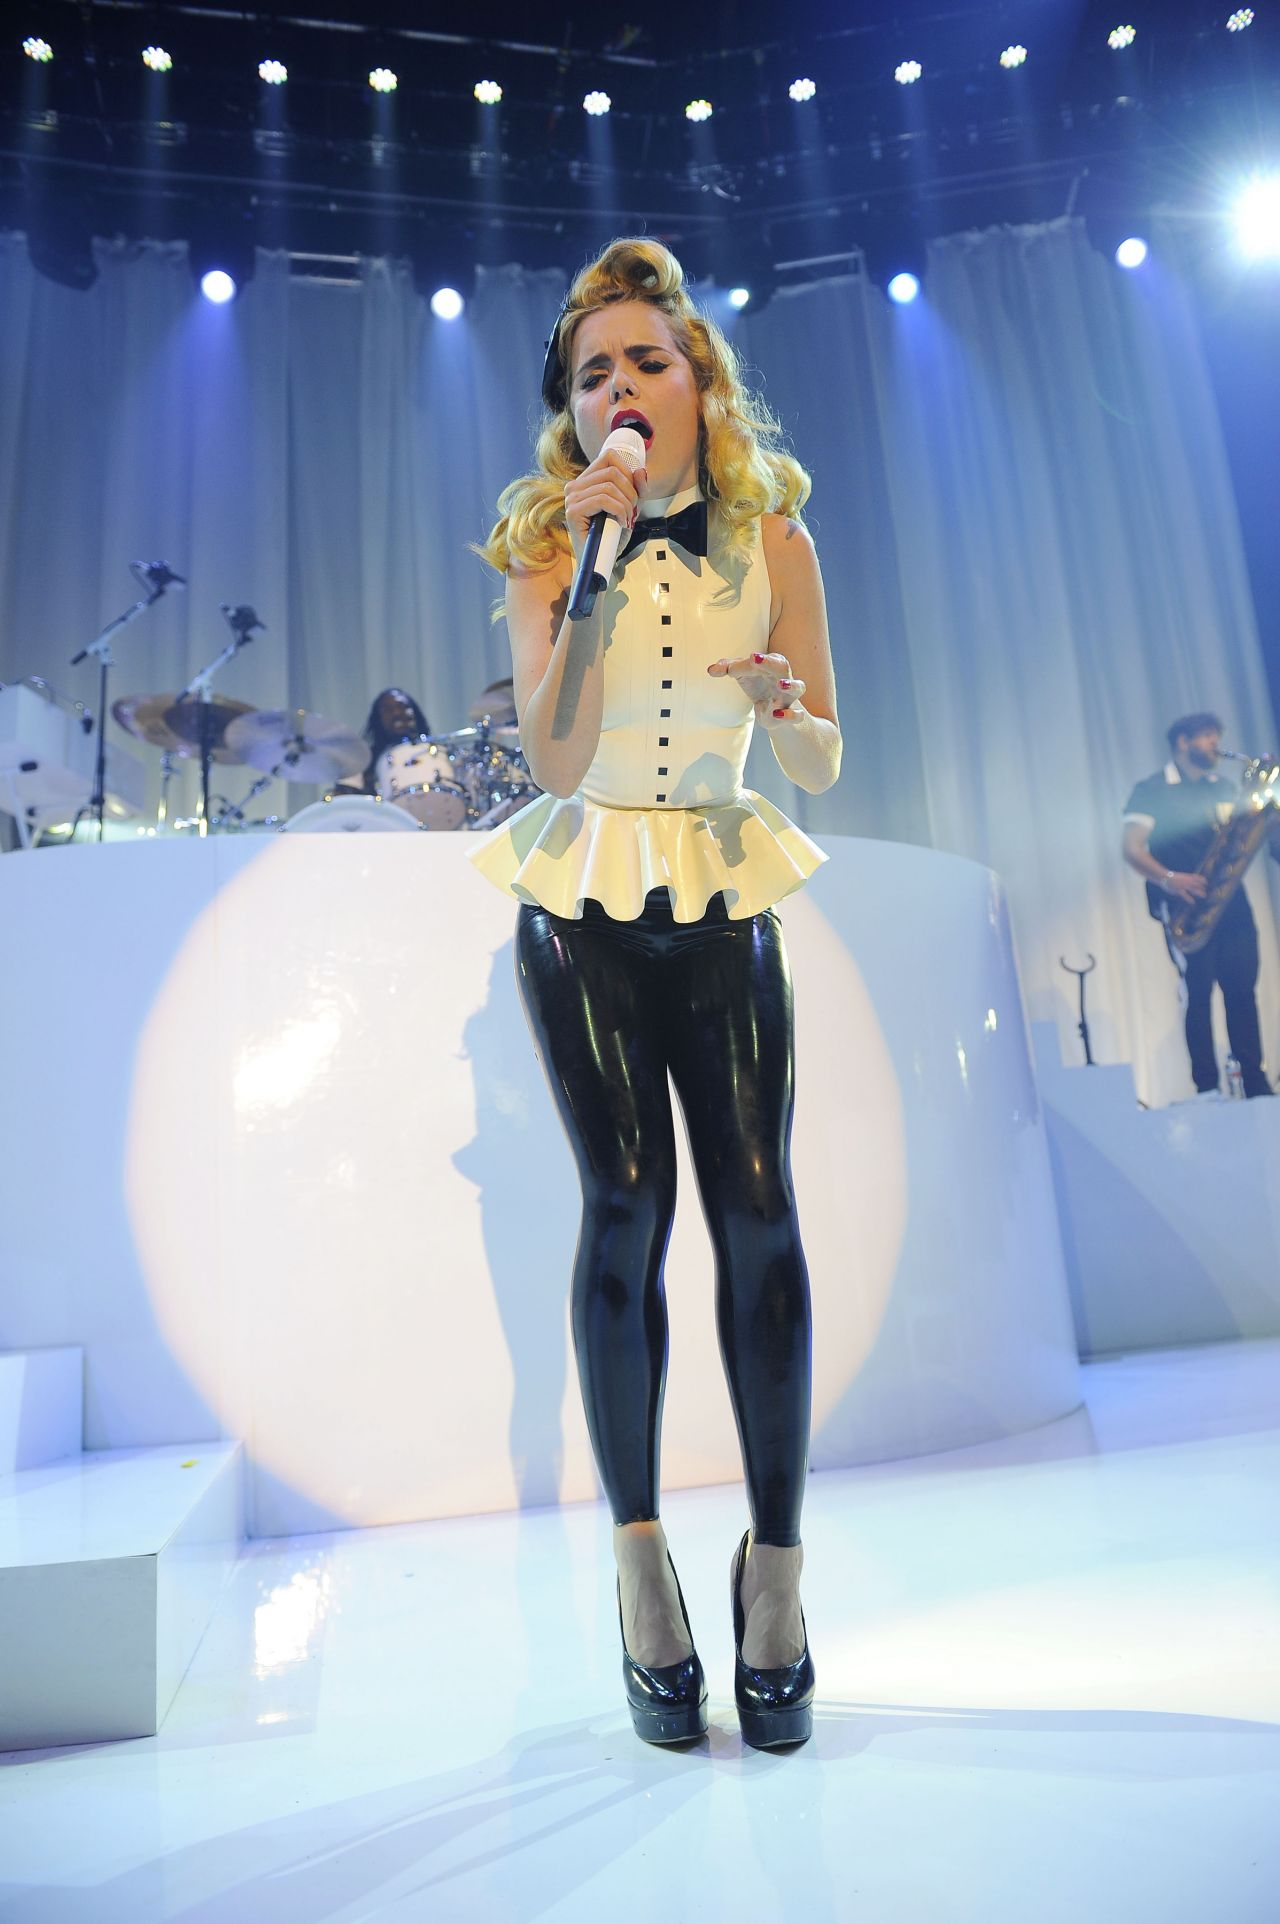 Paloma Faith Performs In Latex Camden Roundhouse May 2014